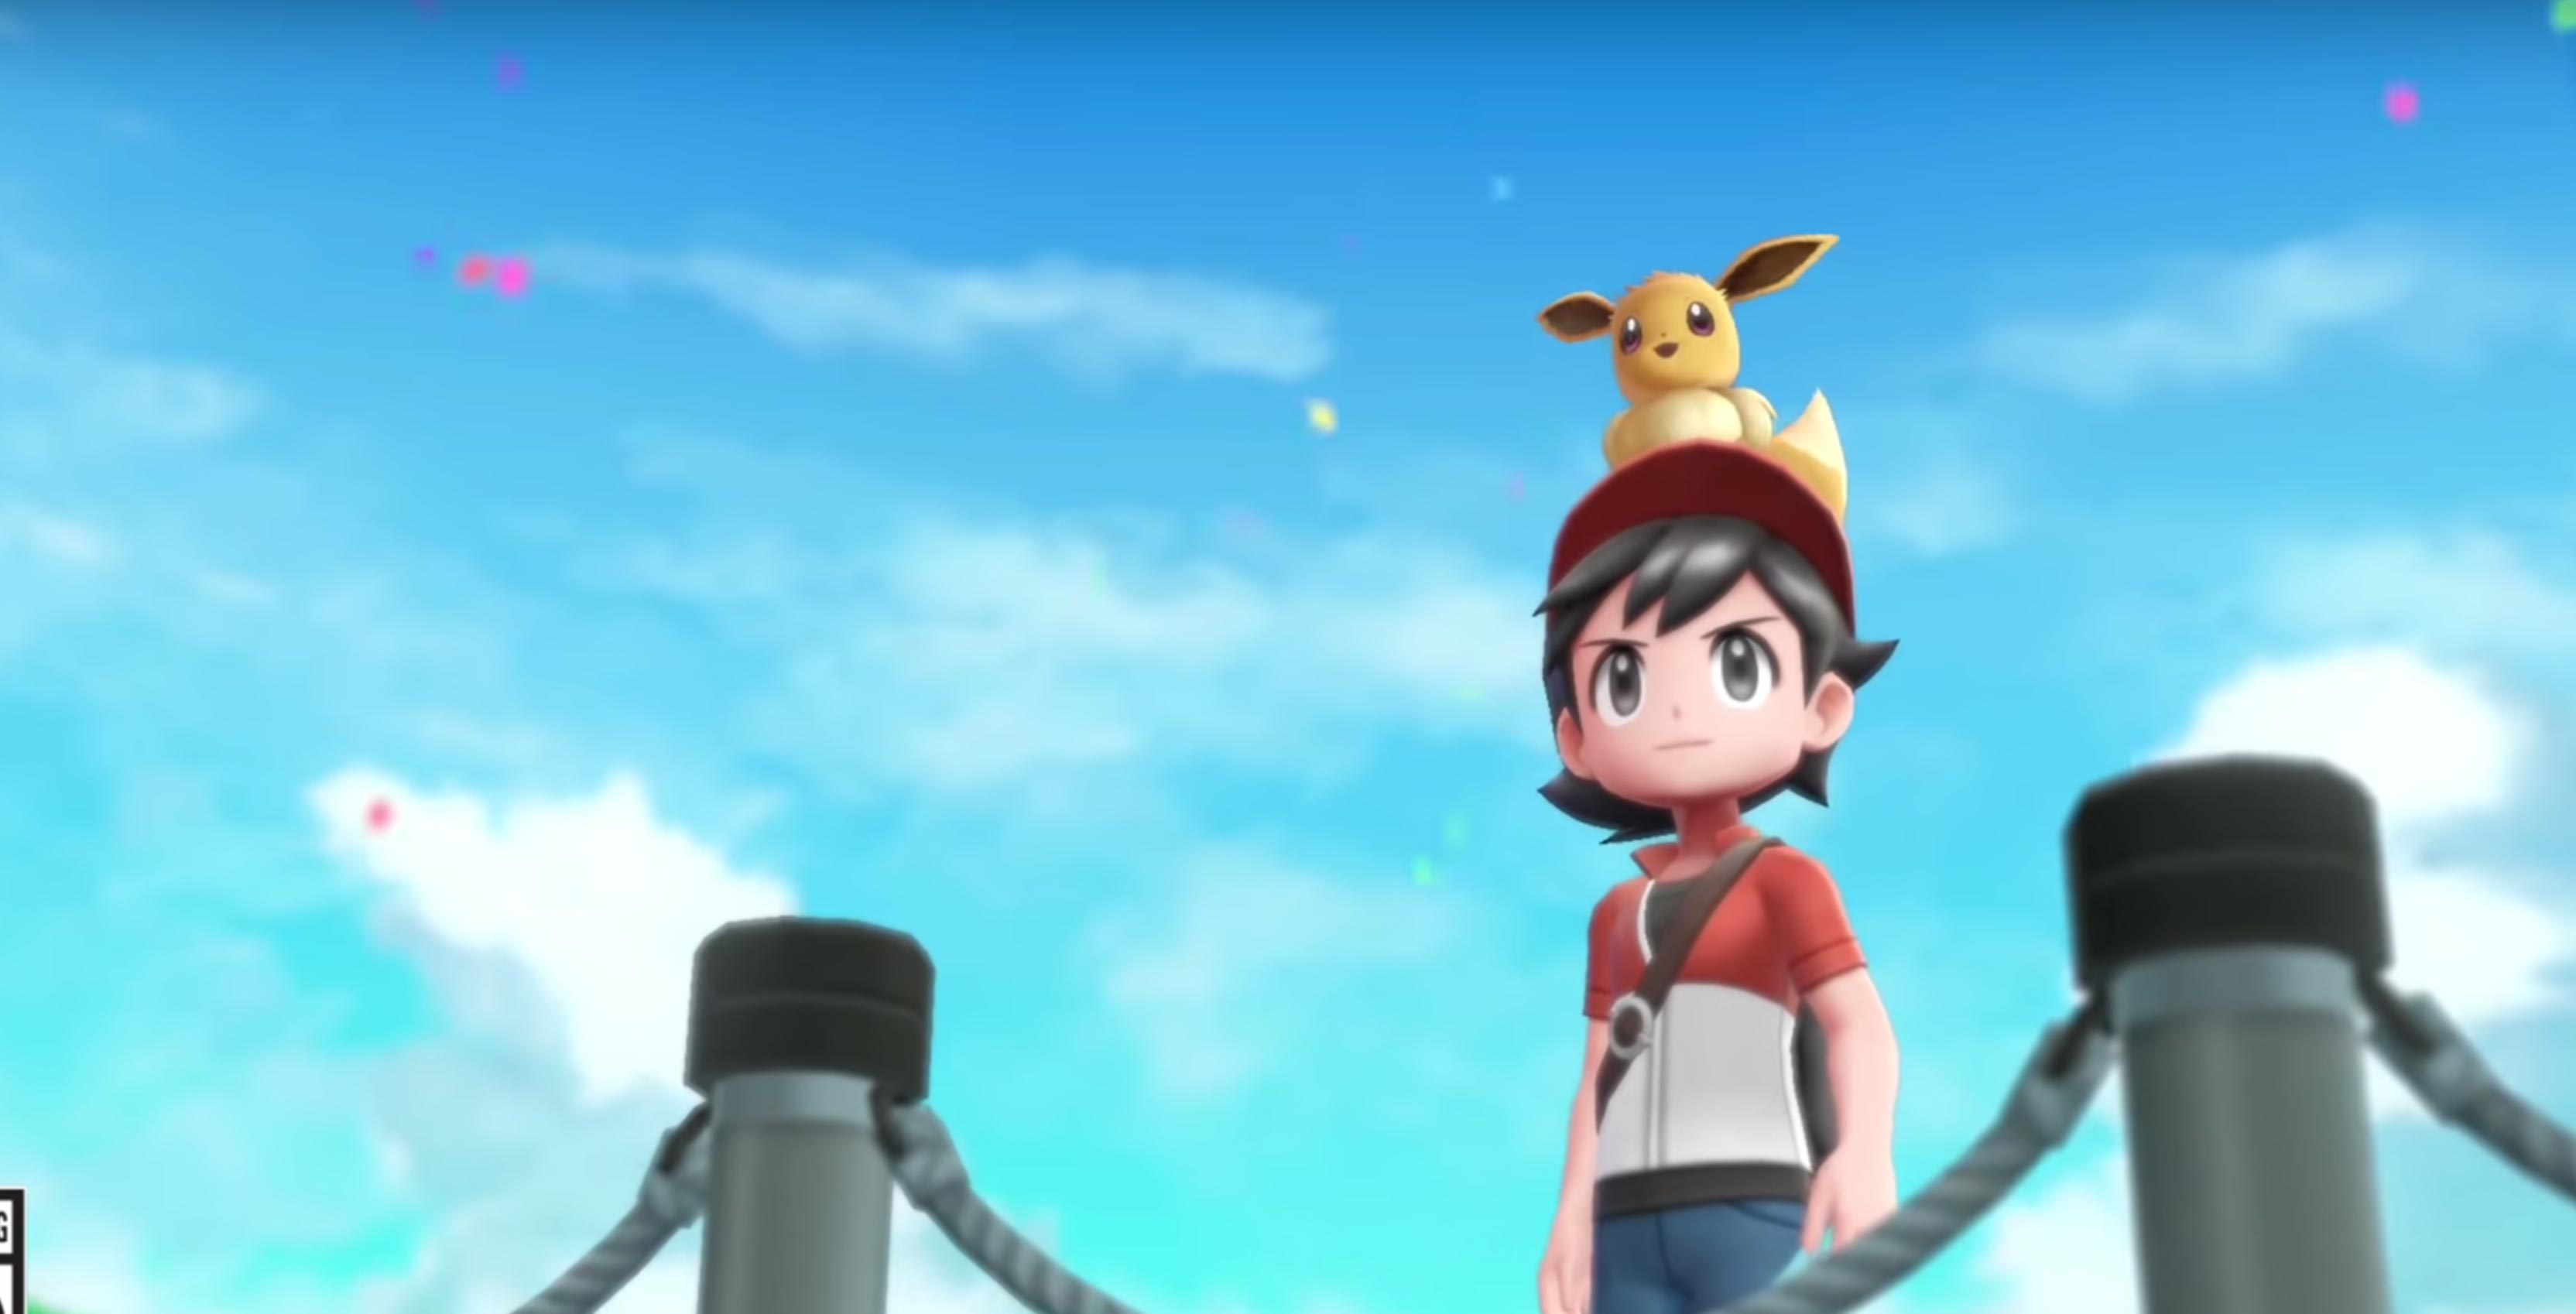 c3b8c2b53e630 As the release date of Pokémon Let s Go Eevee and Let s Go Pikachu nears